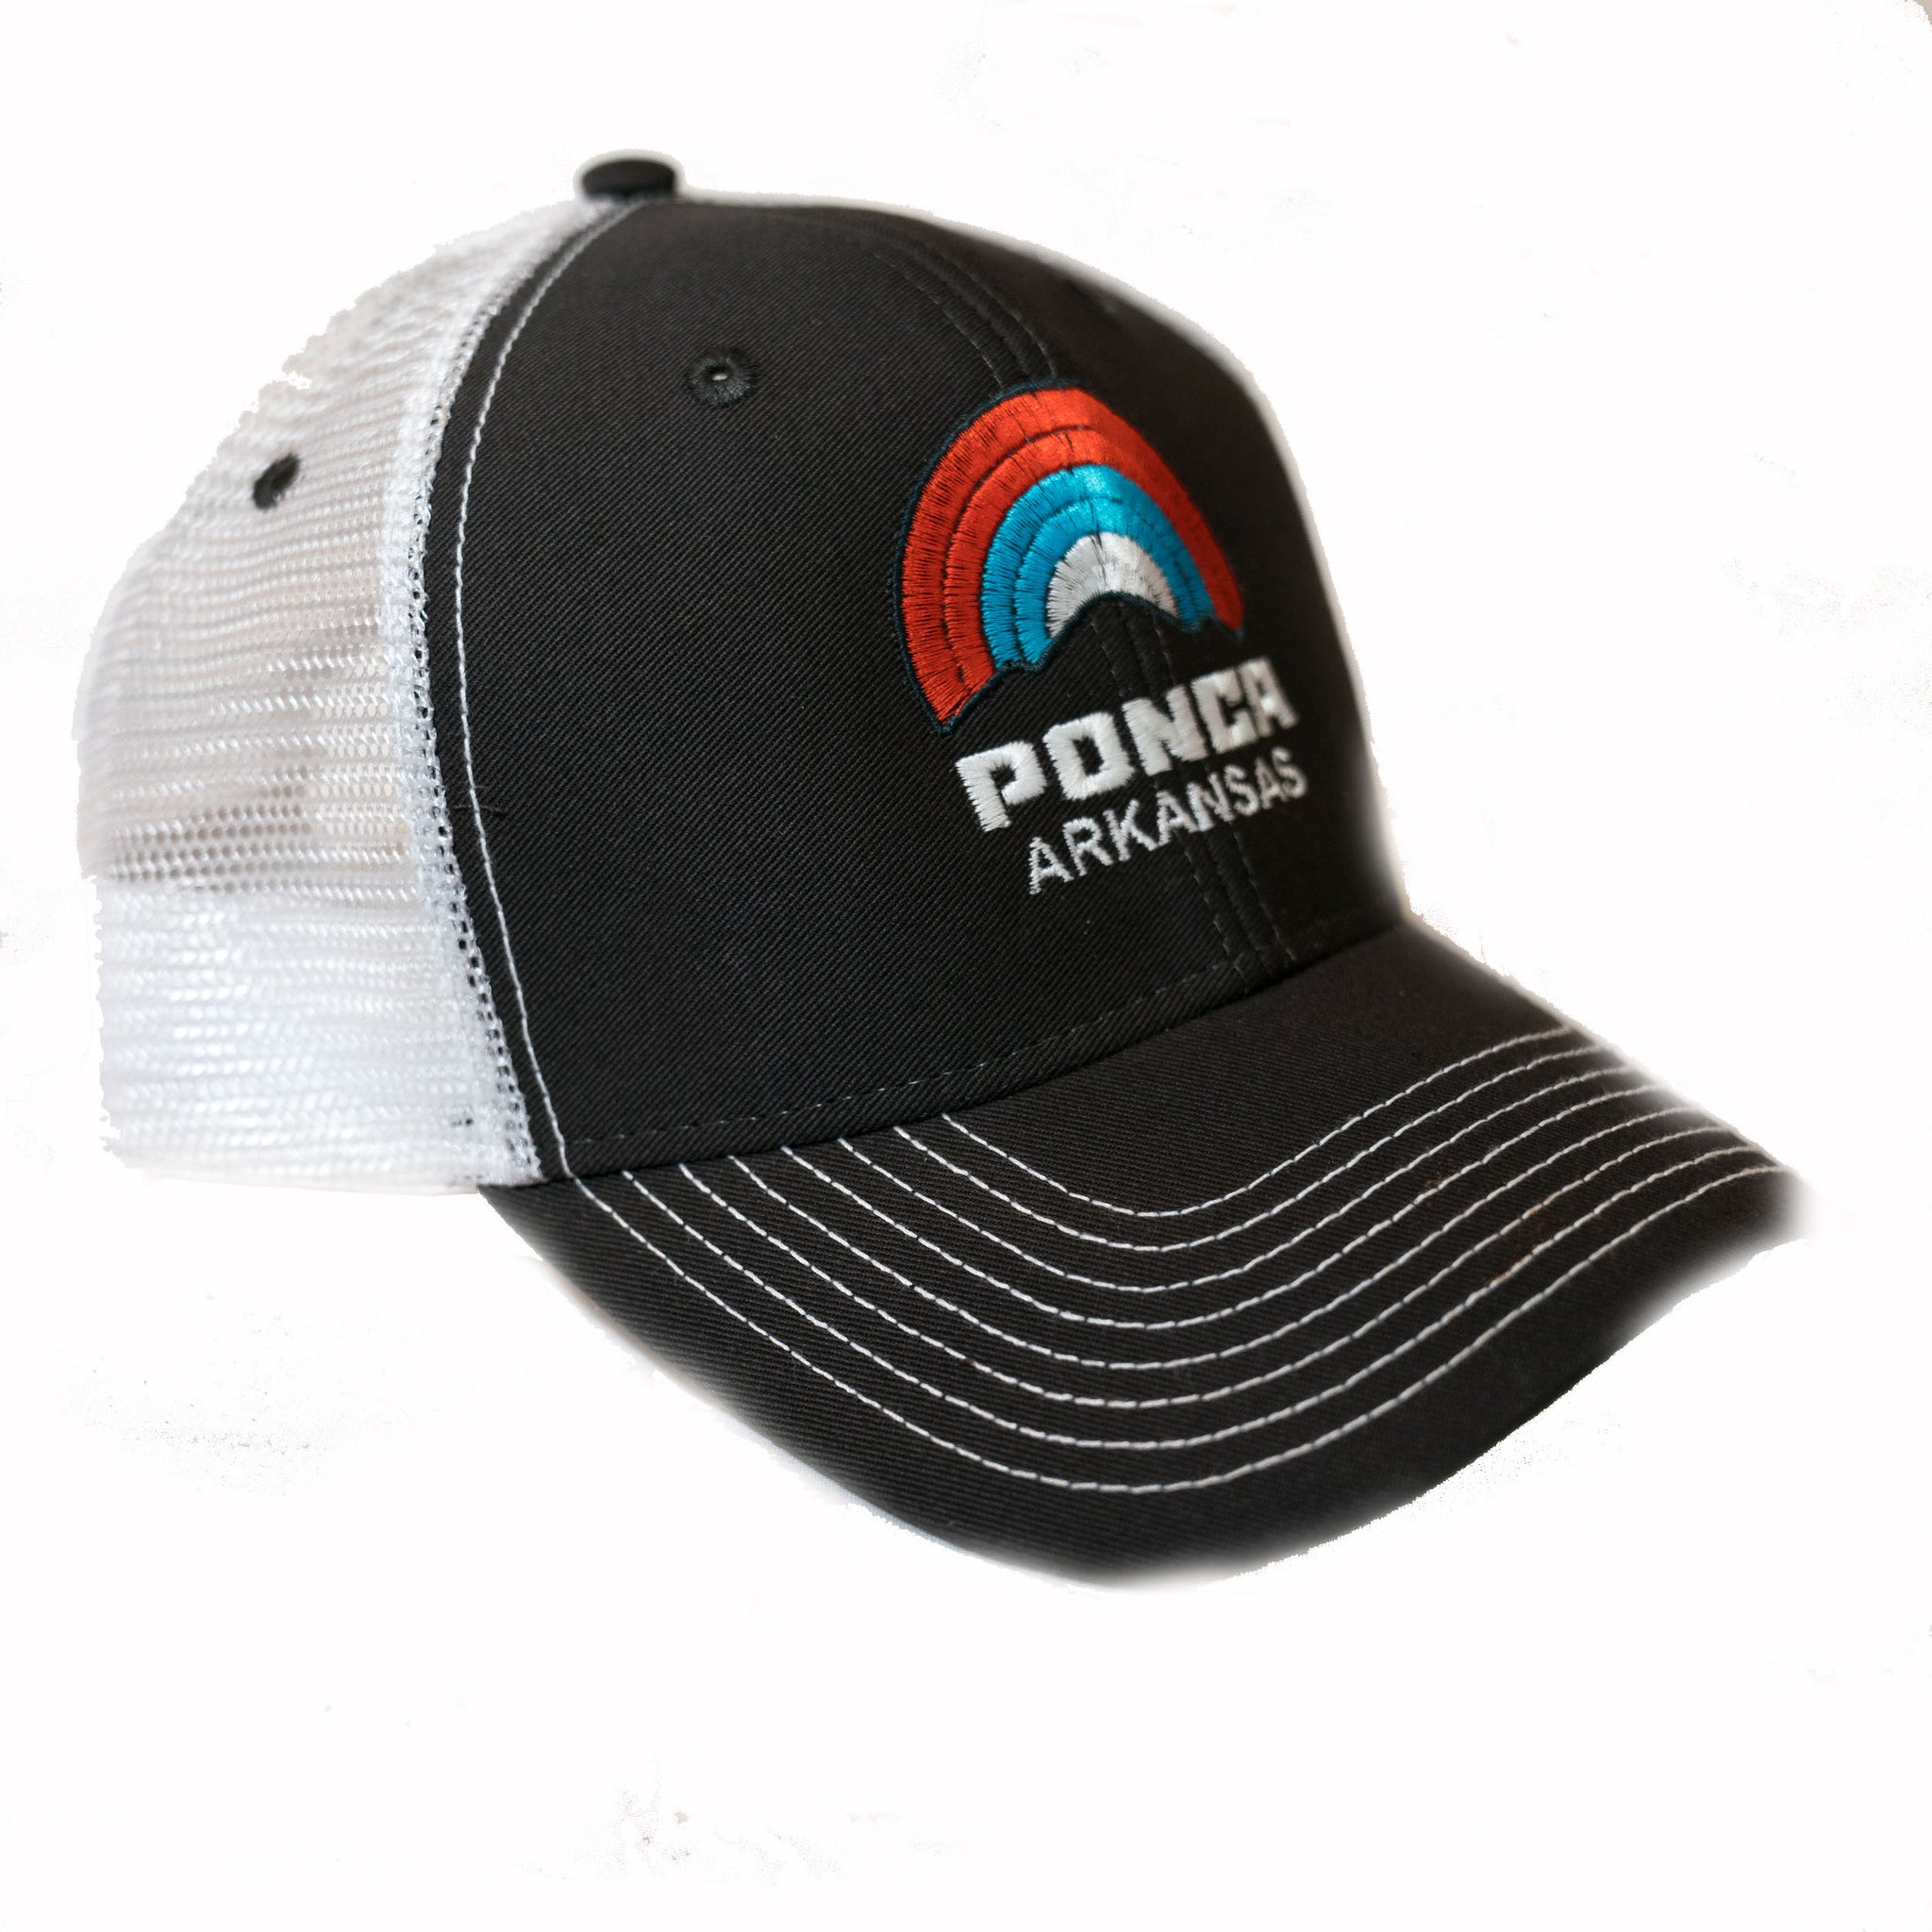 Sideline Ponca Rainbow Hat Dark Grey/White